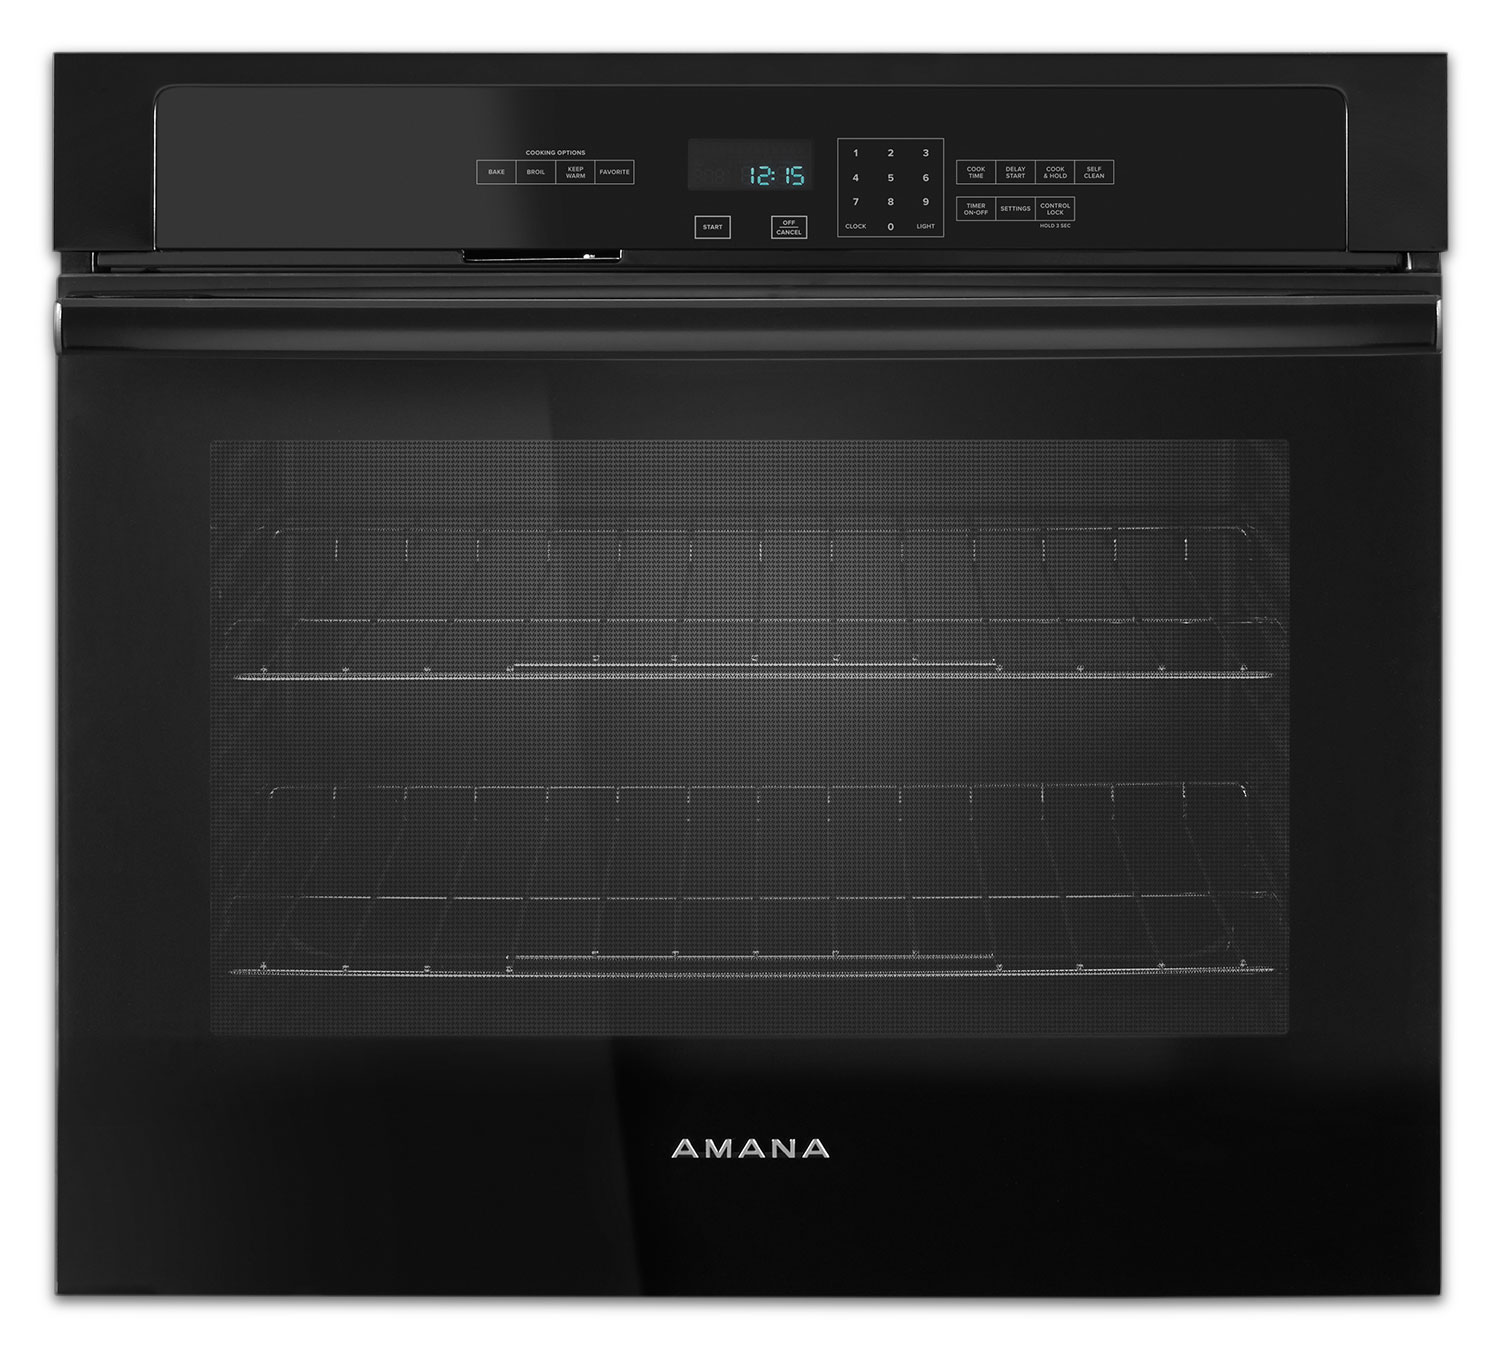 Amana Black Electric Wall Oven (5.0 Cu. Ft.) - AWO6313SFB